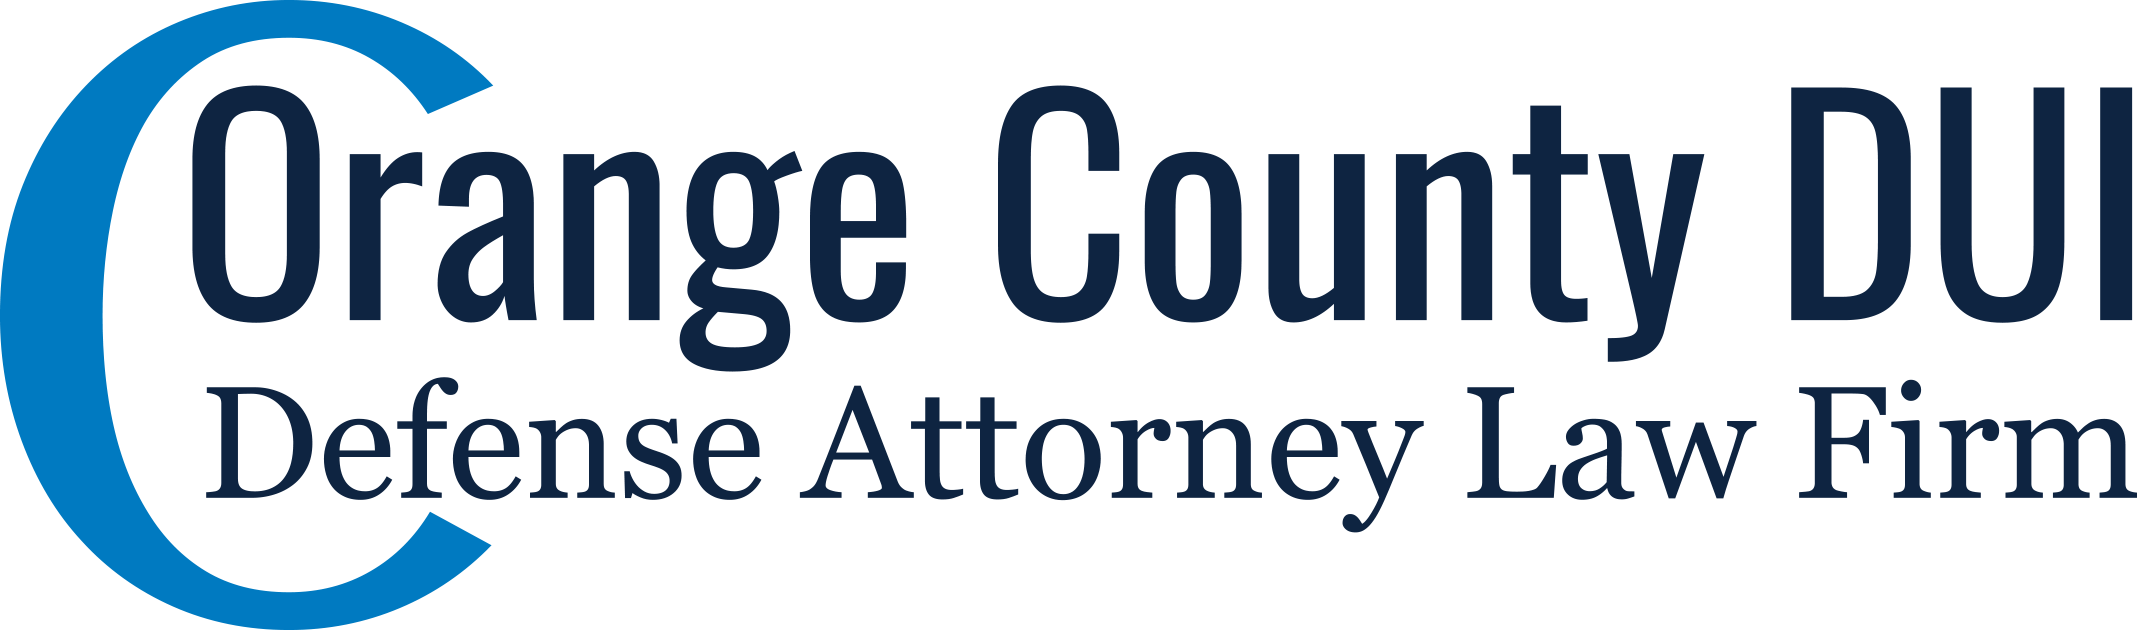 Orange County DUI Defense Attorney Law Firm logo